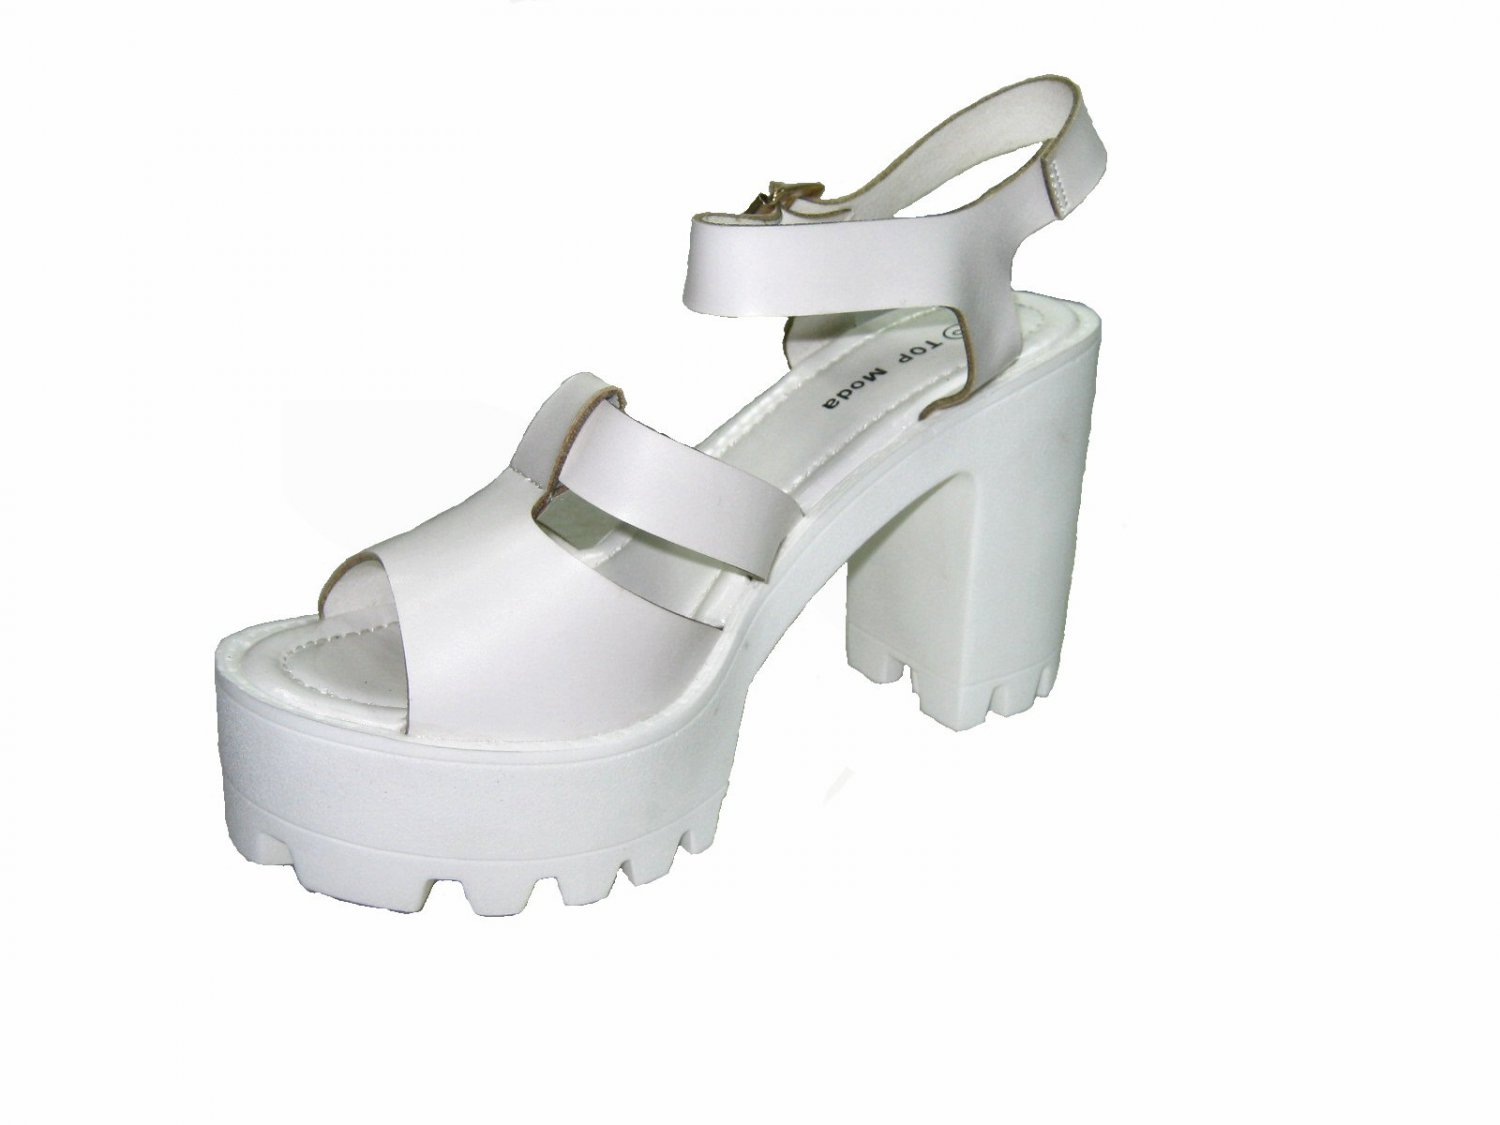 05a0690dad01 Top Moda Basic-9 platform lug sole chunky 4 inch high heel strappy sandals  white size 7.5